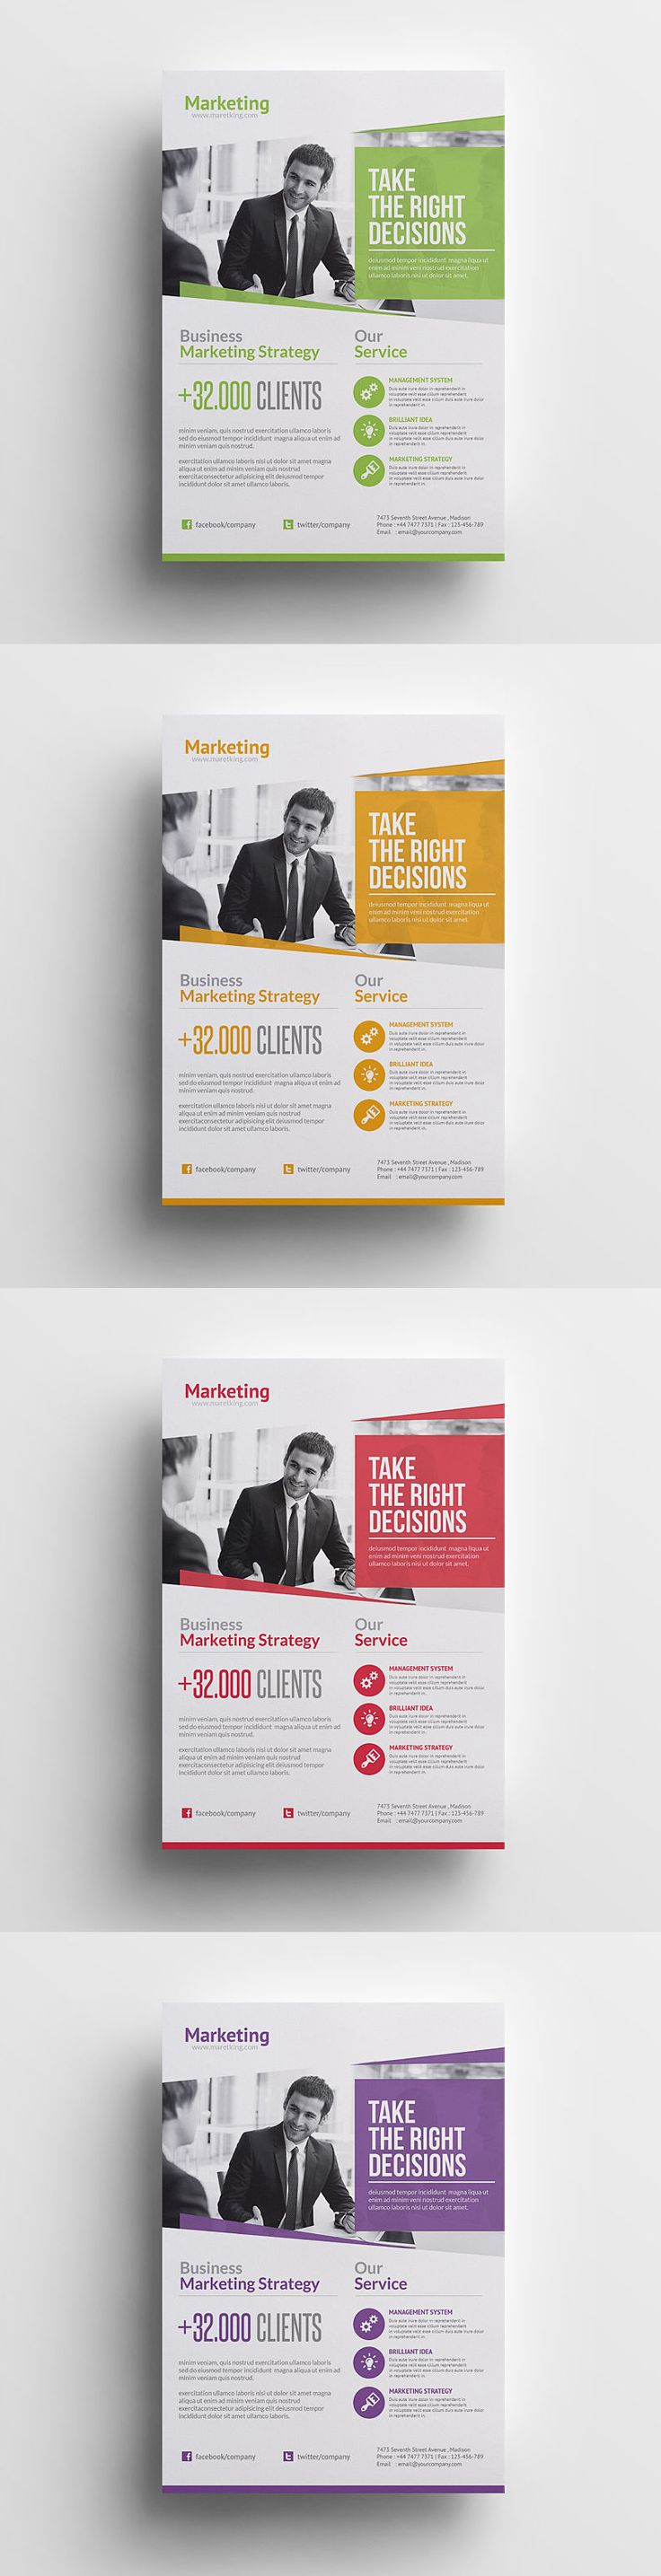 best ideas about flyer design graphic design marketing business flyer graphic templates by punkl subscribe to envato elements for unlimited graphic templates s for a single monthly